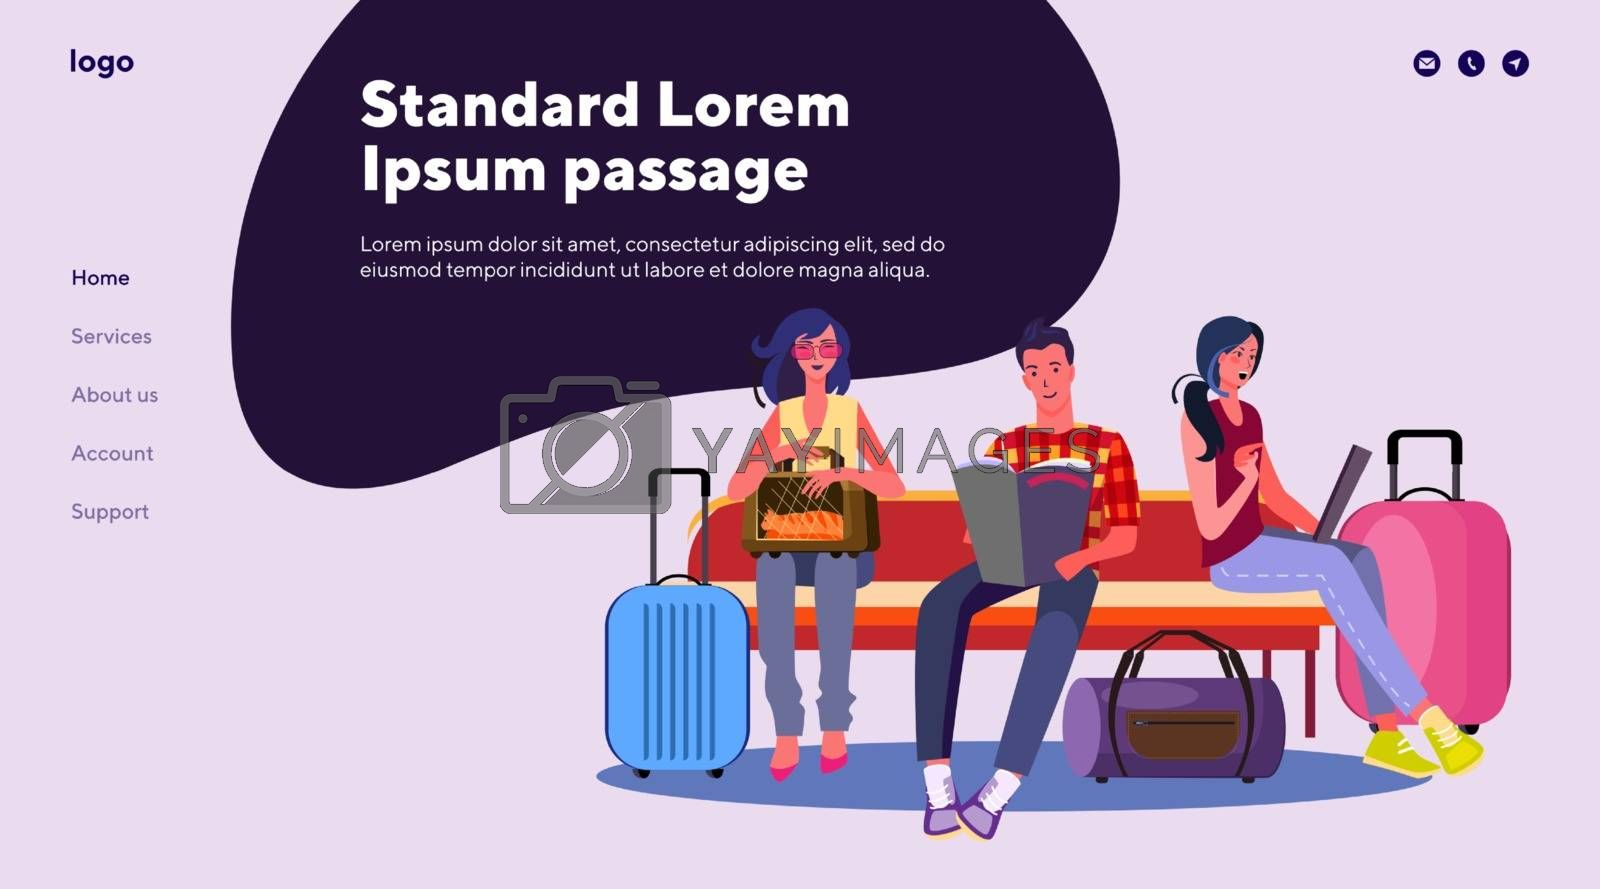 Group of people waiting for their flight. Airport, plane, luggage, expecting flat vector illustration. Tourism and travelling concept for banner, website design or landing web page